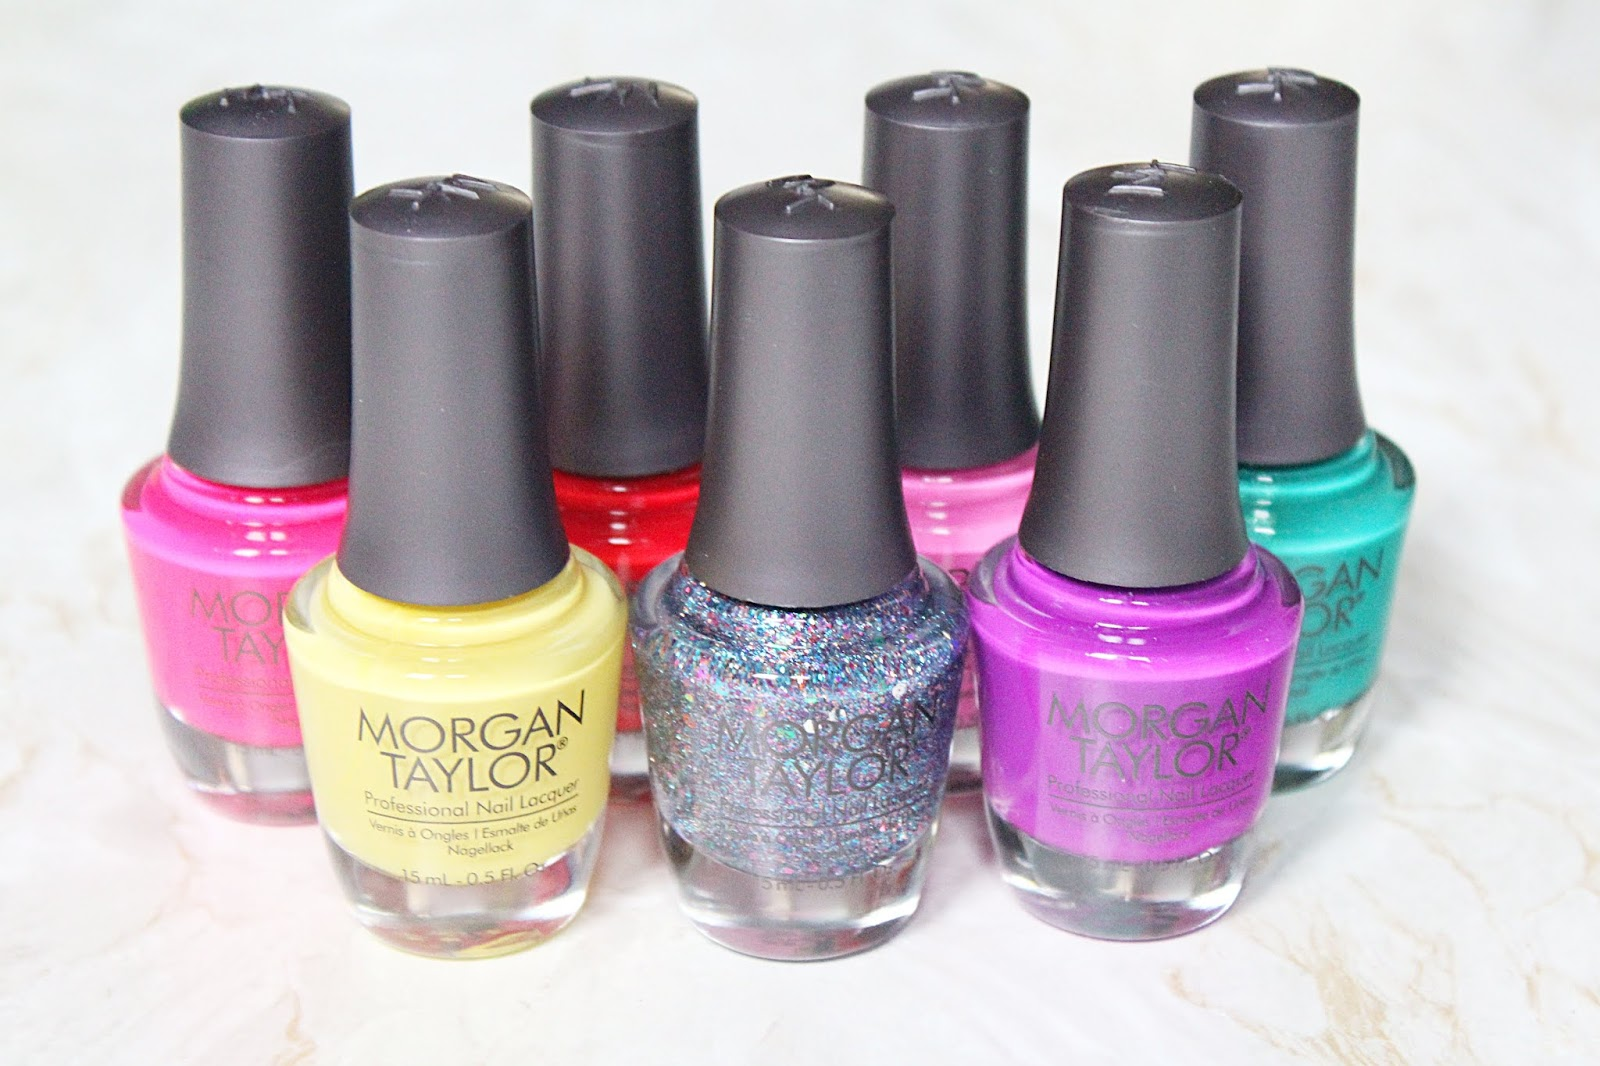 Morgan Taylor Rocketman Collection Review & Swatches